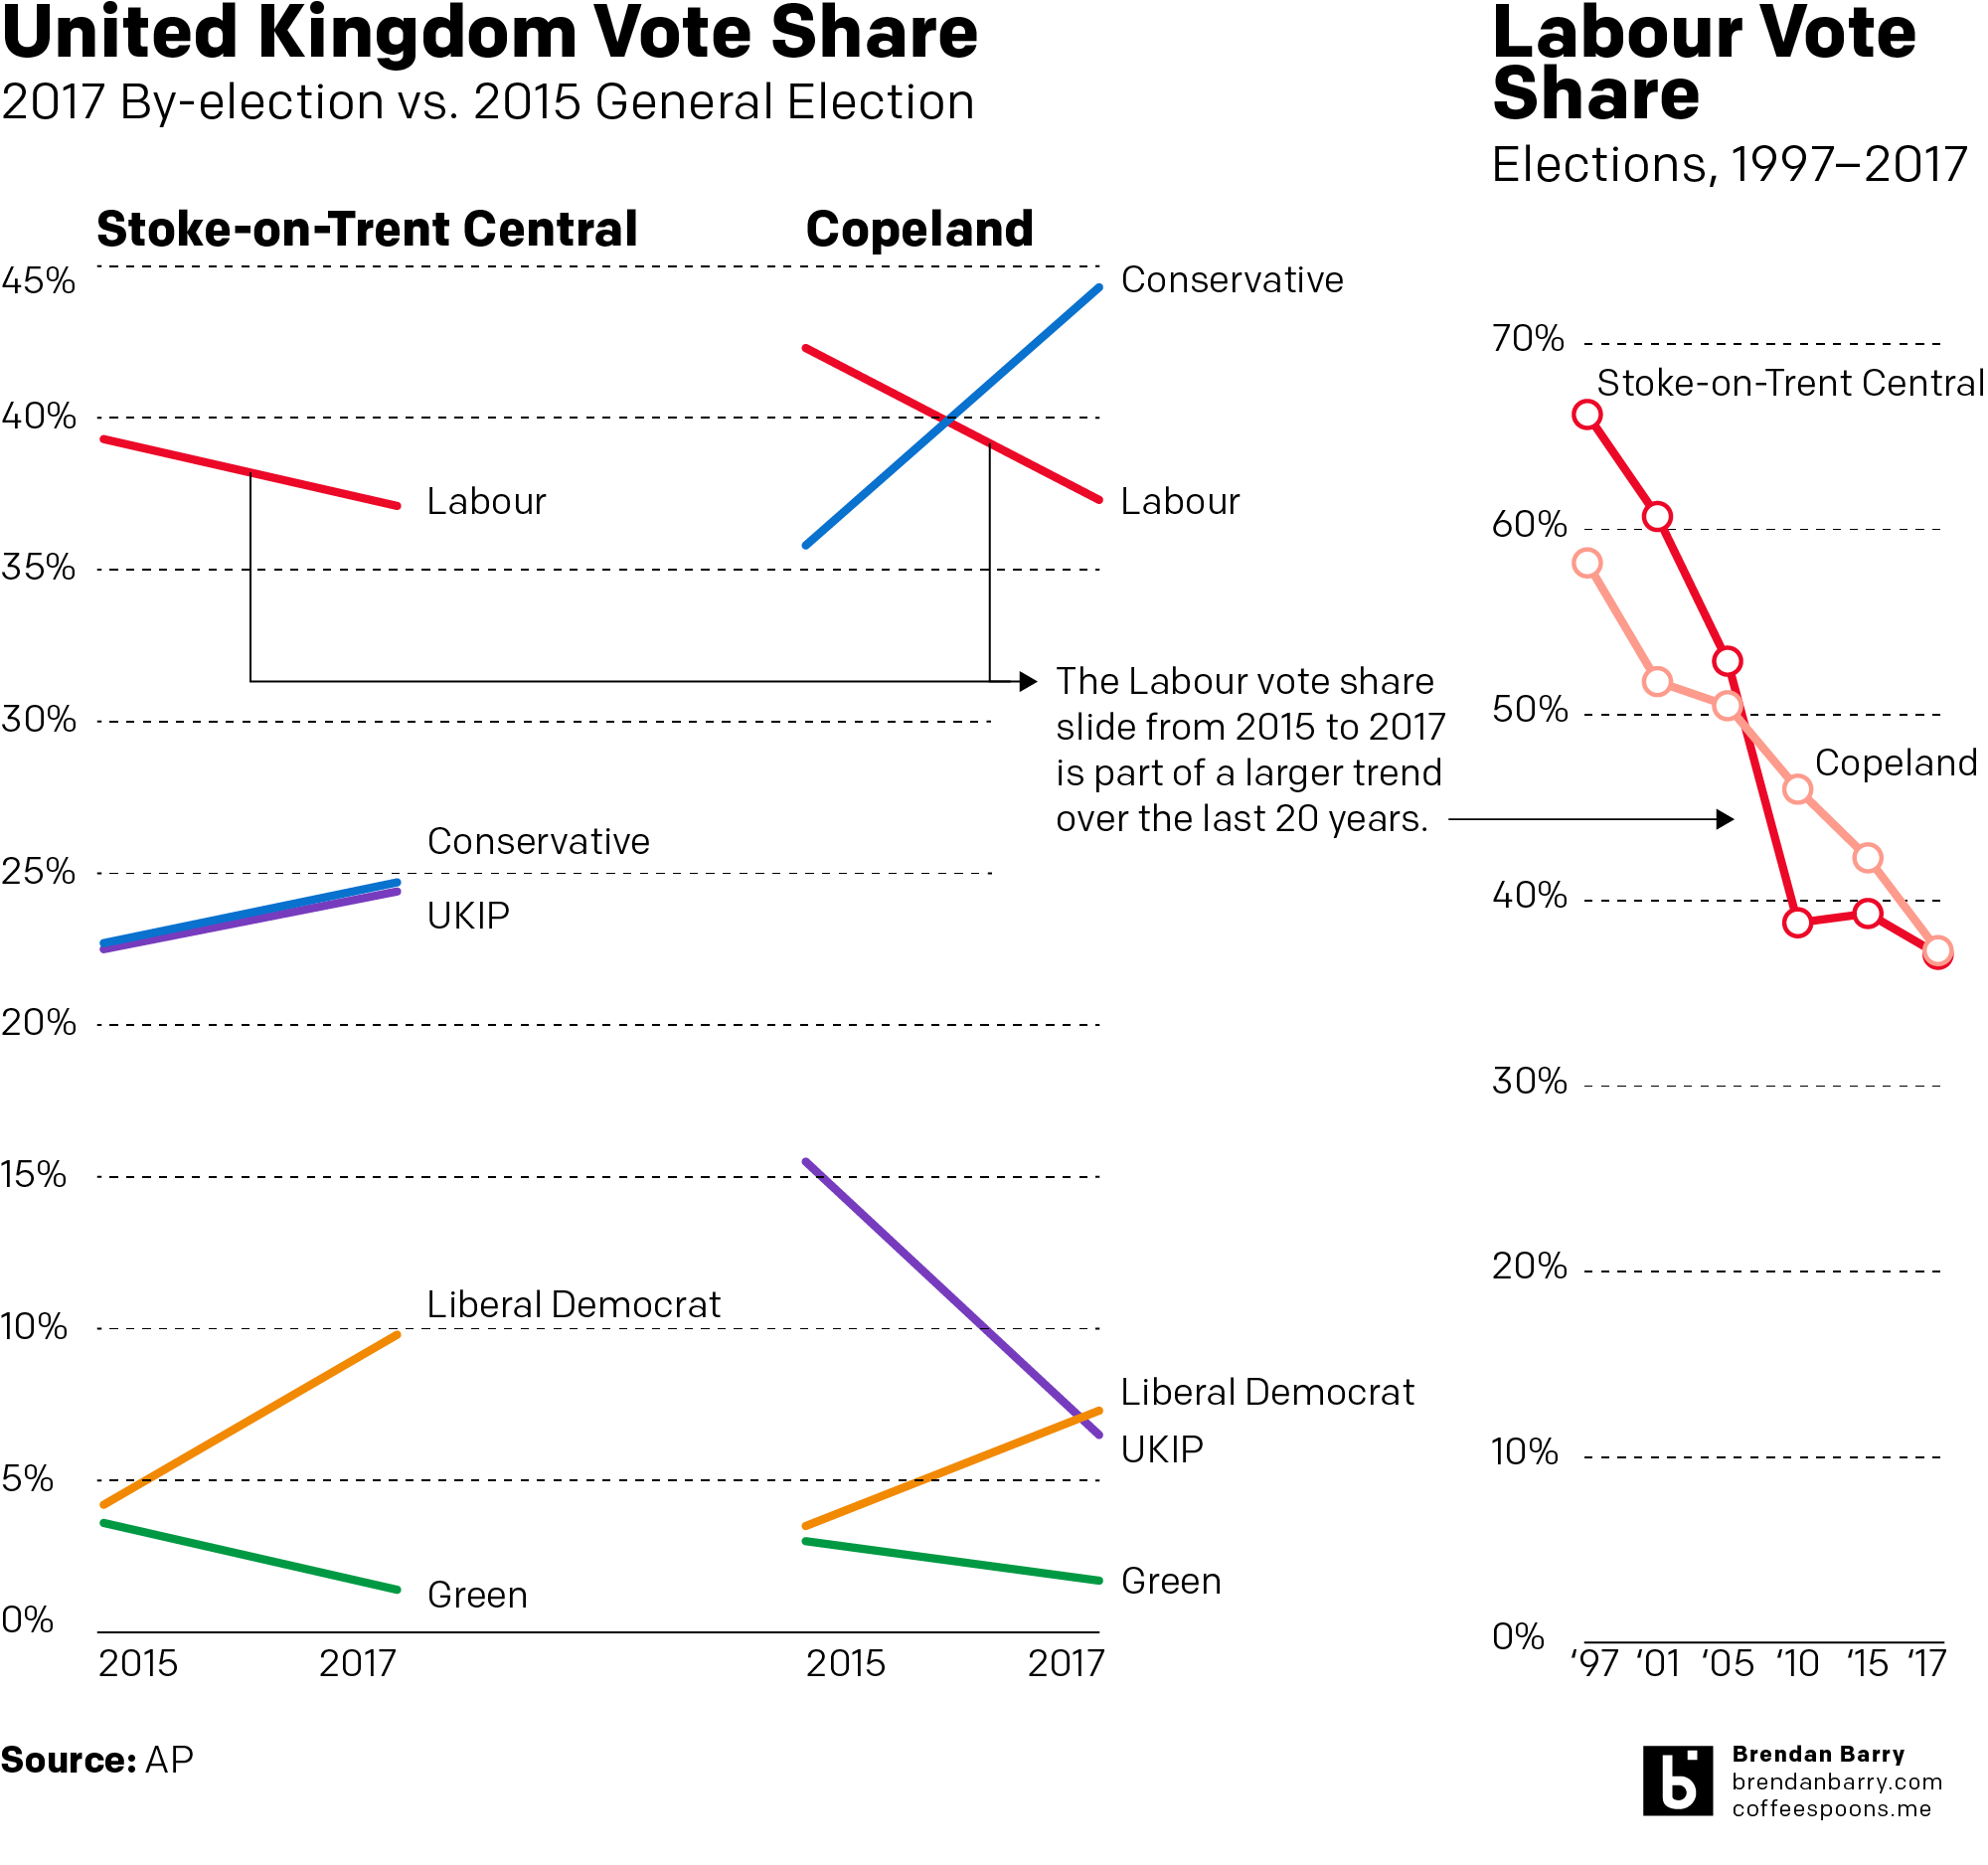 Look at those Lib Dems, is that a rebound I see?